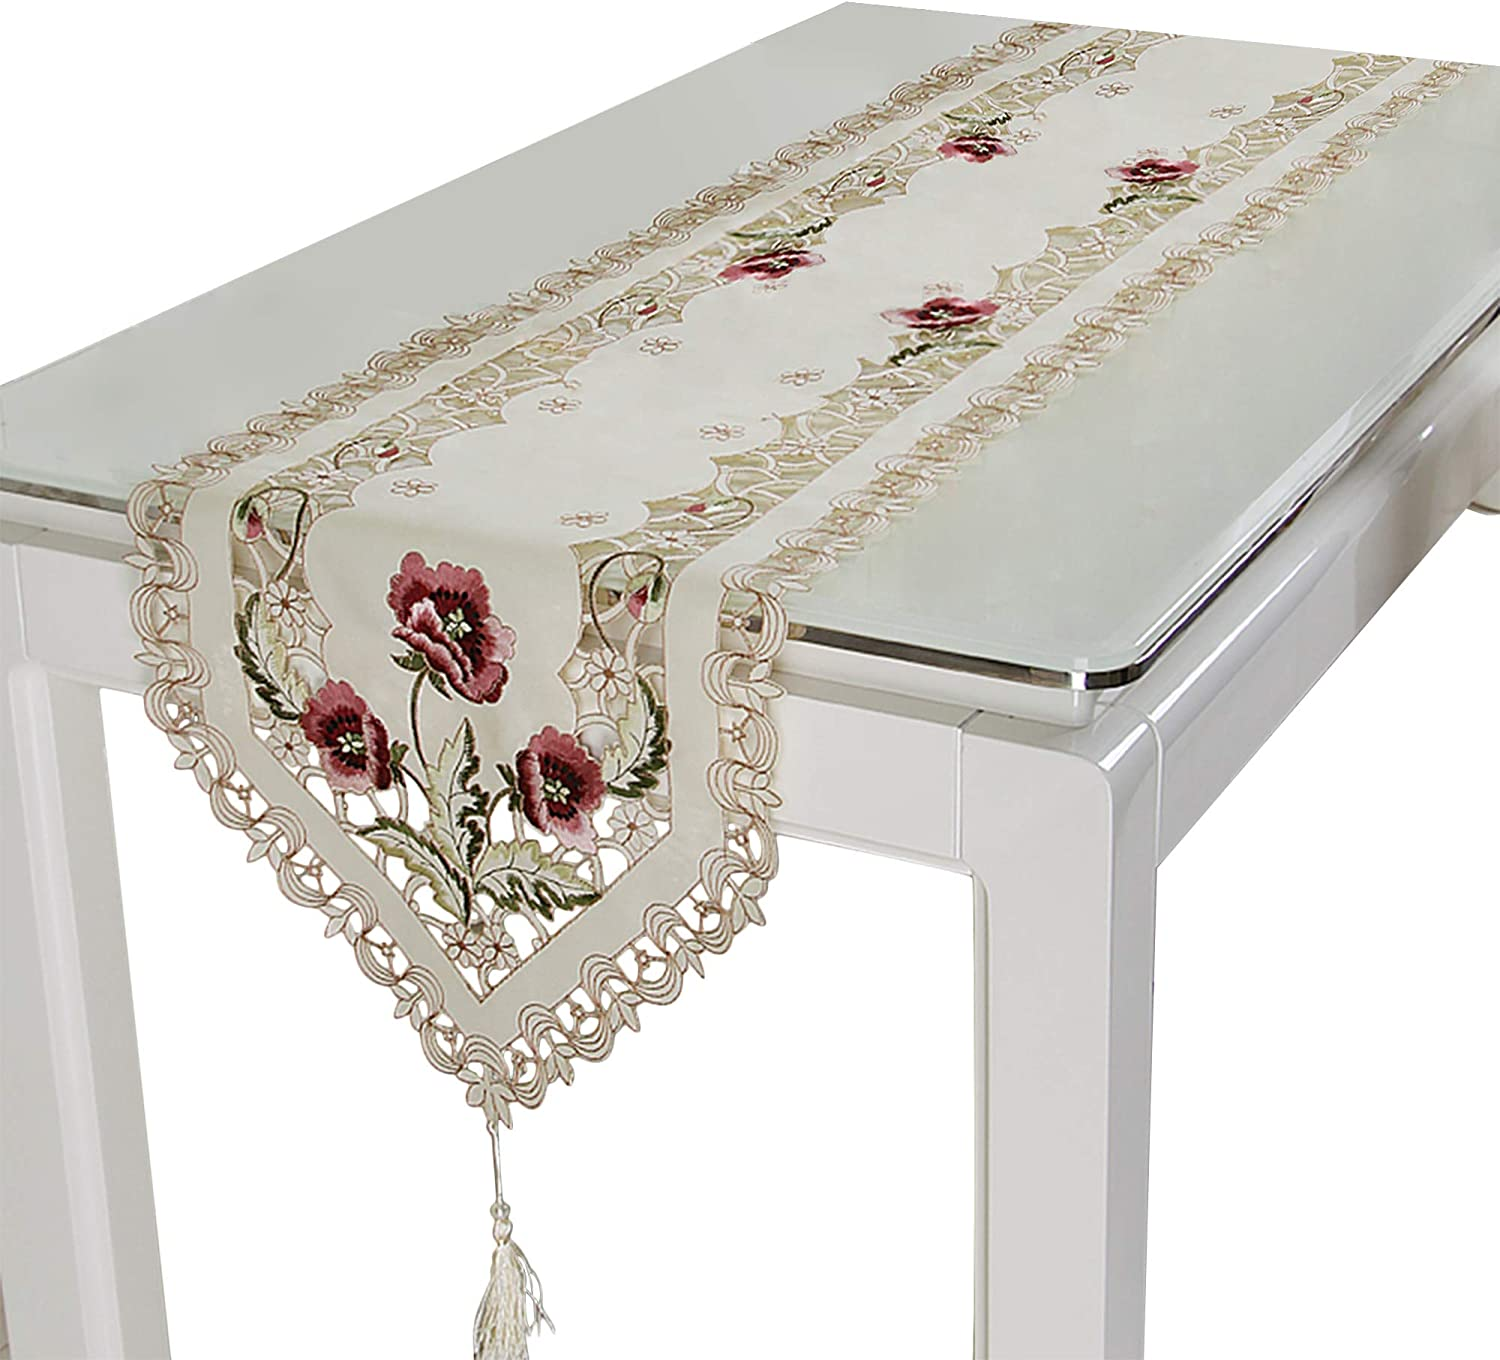 BeautiLife Vintage European Flower Lace Table Runner Elegant Runners Cabinet Room Dining Room Table Decoration